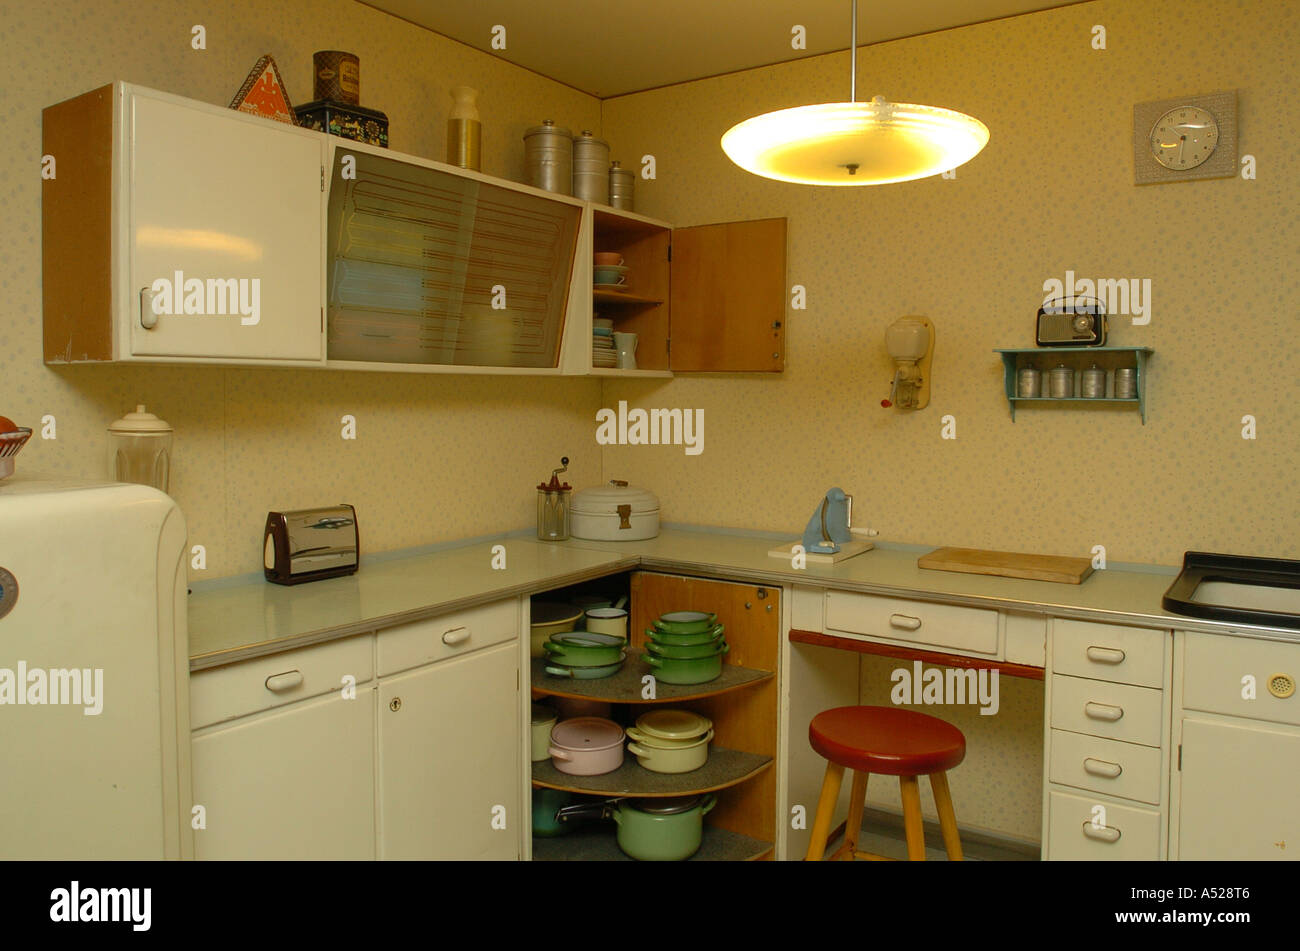 apartment in 50s style stockfotos apartment in 50s style bilder alamy. Black Bedroom Furniture Sets. Home Design Ideas